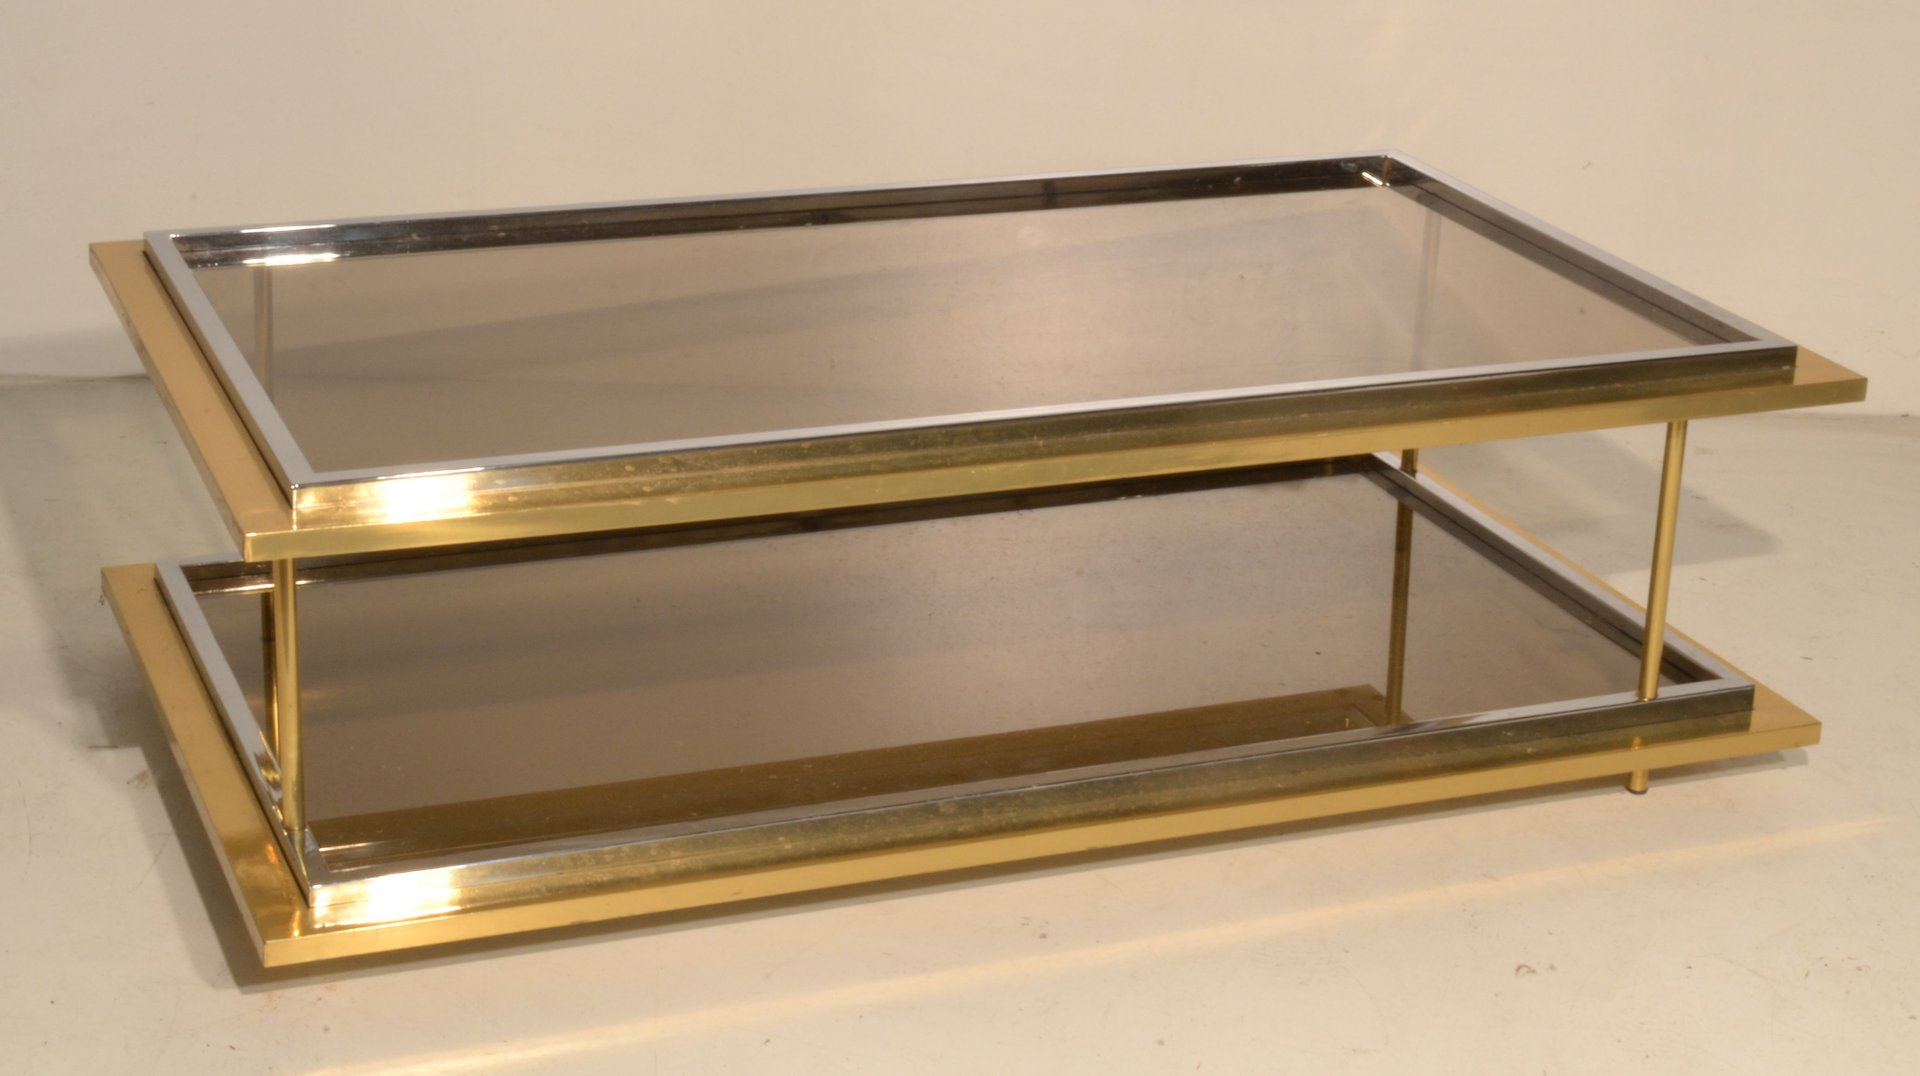 Vintage Italian Glass & Brass Coffee Table 1970s for sale at Pamono